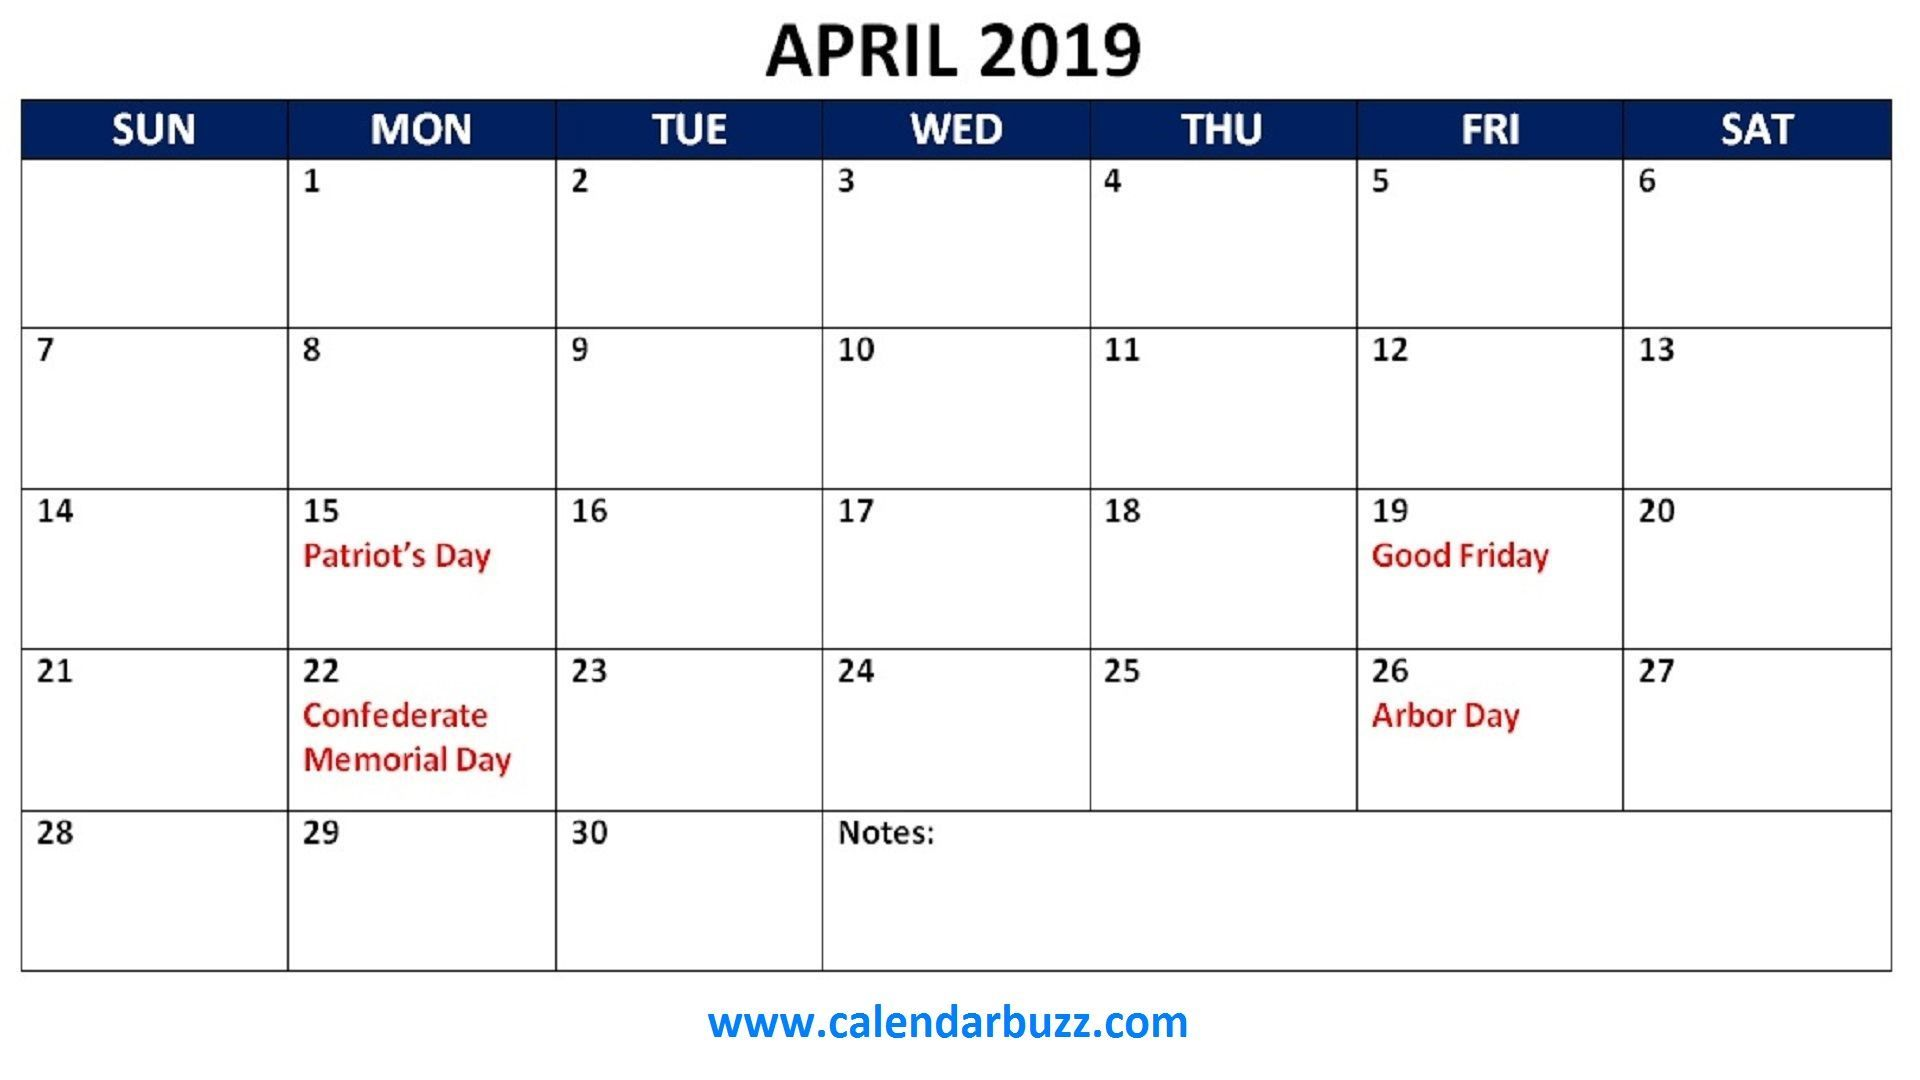 April 2019 Calendar With Holidays Holiday Calendar Printable